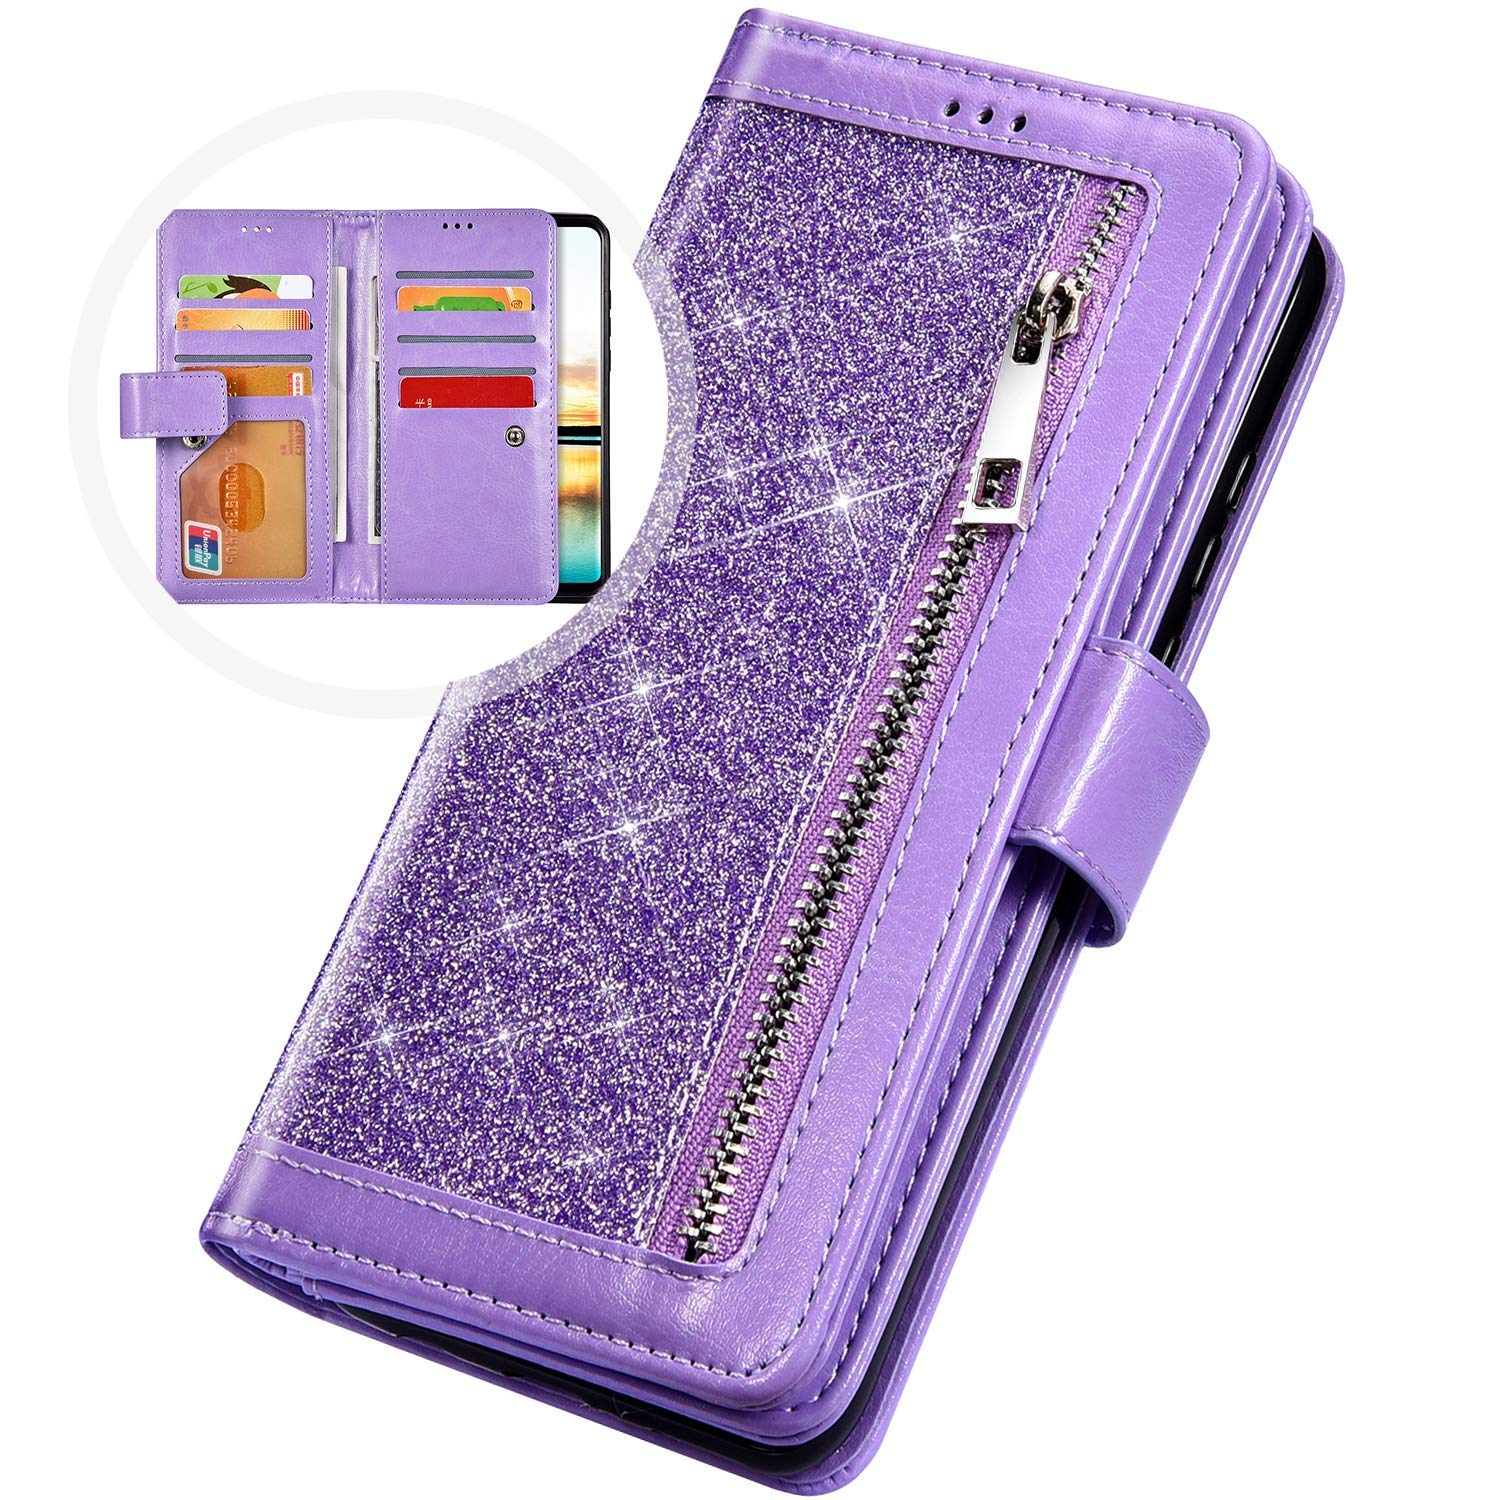 PHEZEN Case for Samsung Galaxy A50 Wallet Case,Sparkle Bling Glitter PU Leather Magnetic Flip Folio Protective Case Multi-Function 9 Credit Card Holders with Zipper Coins Purse Cover,Purple by PHEZEN